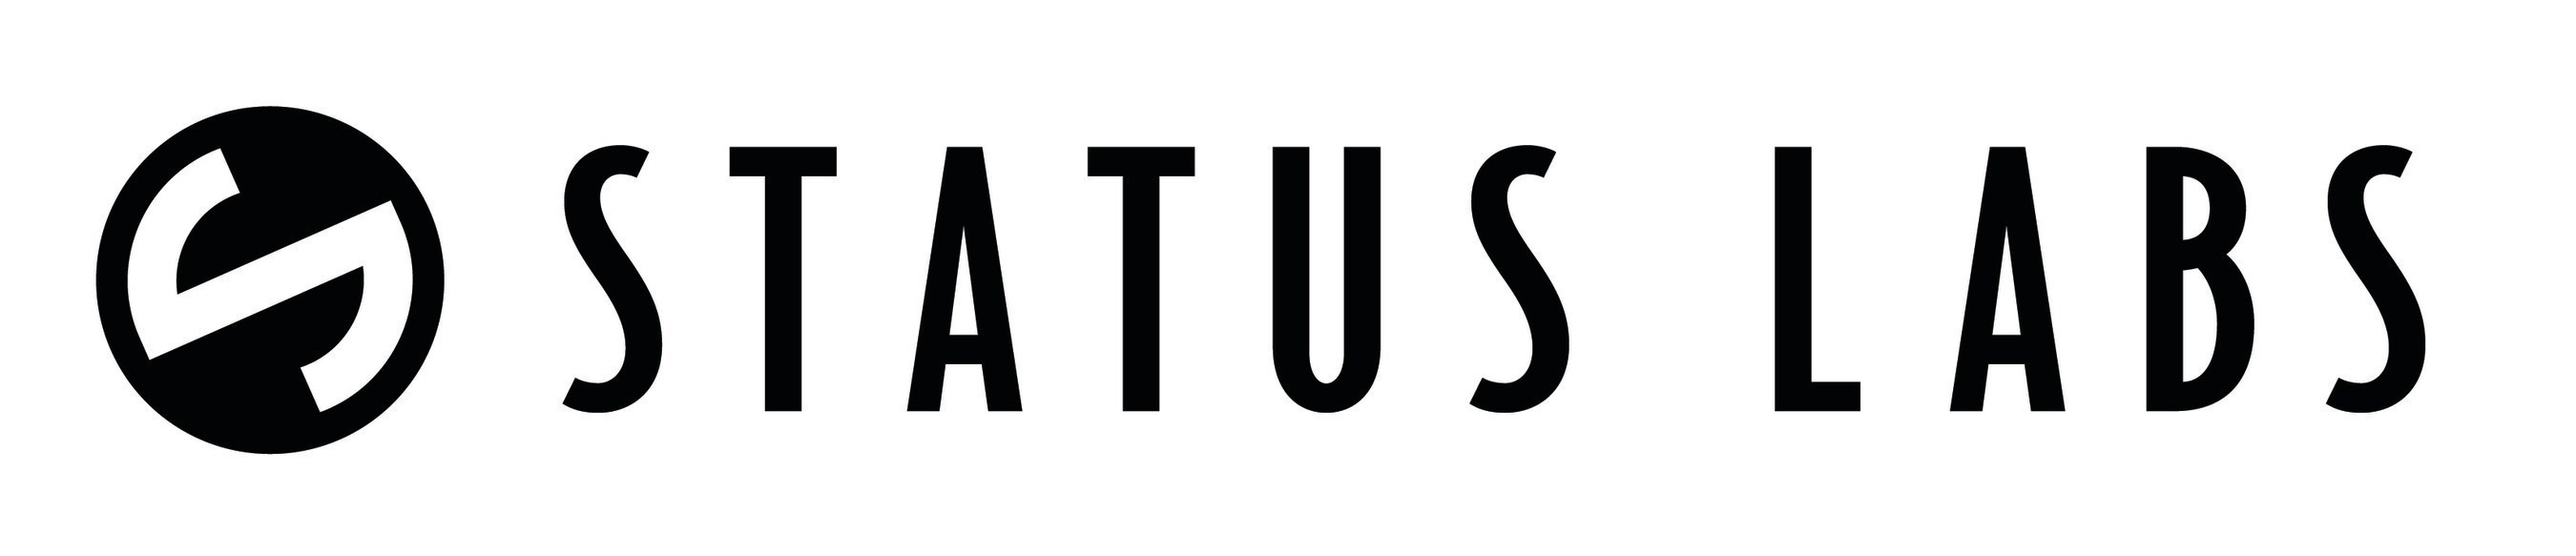 Status Labs Named to Inc. 500 List of Fastest-Growing Companies Digital reputation management, PR and marketing  firm ranks 339th on the list with 1,099% growth over a three year period